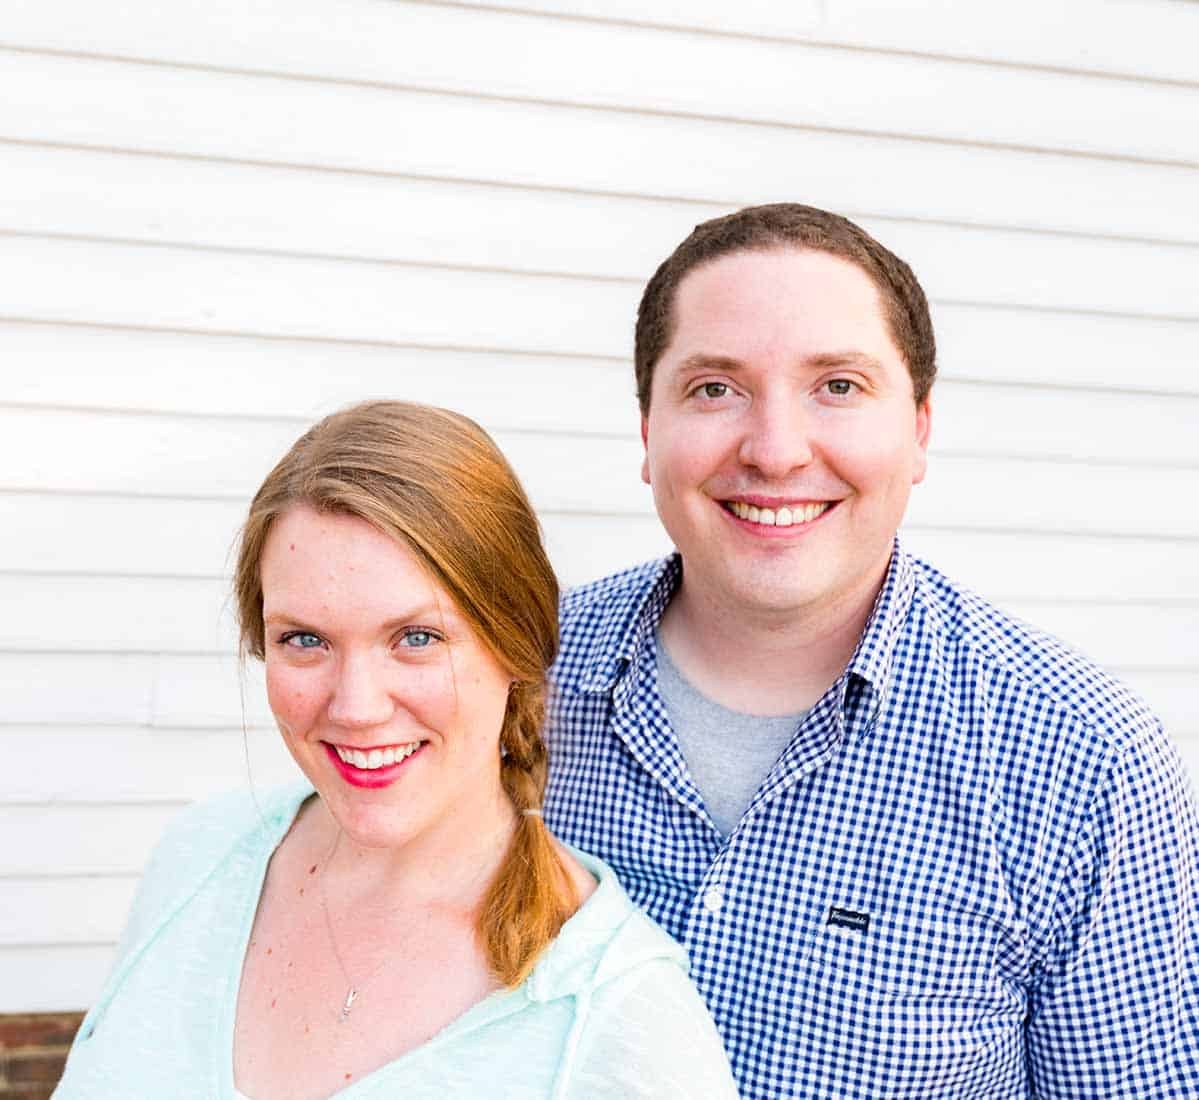 Adam and Joanne Gallagher, Owners, publishers, authors, and recipe developers of Inspired Taste Recipe and Food Blog